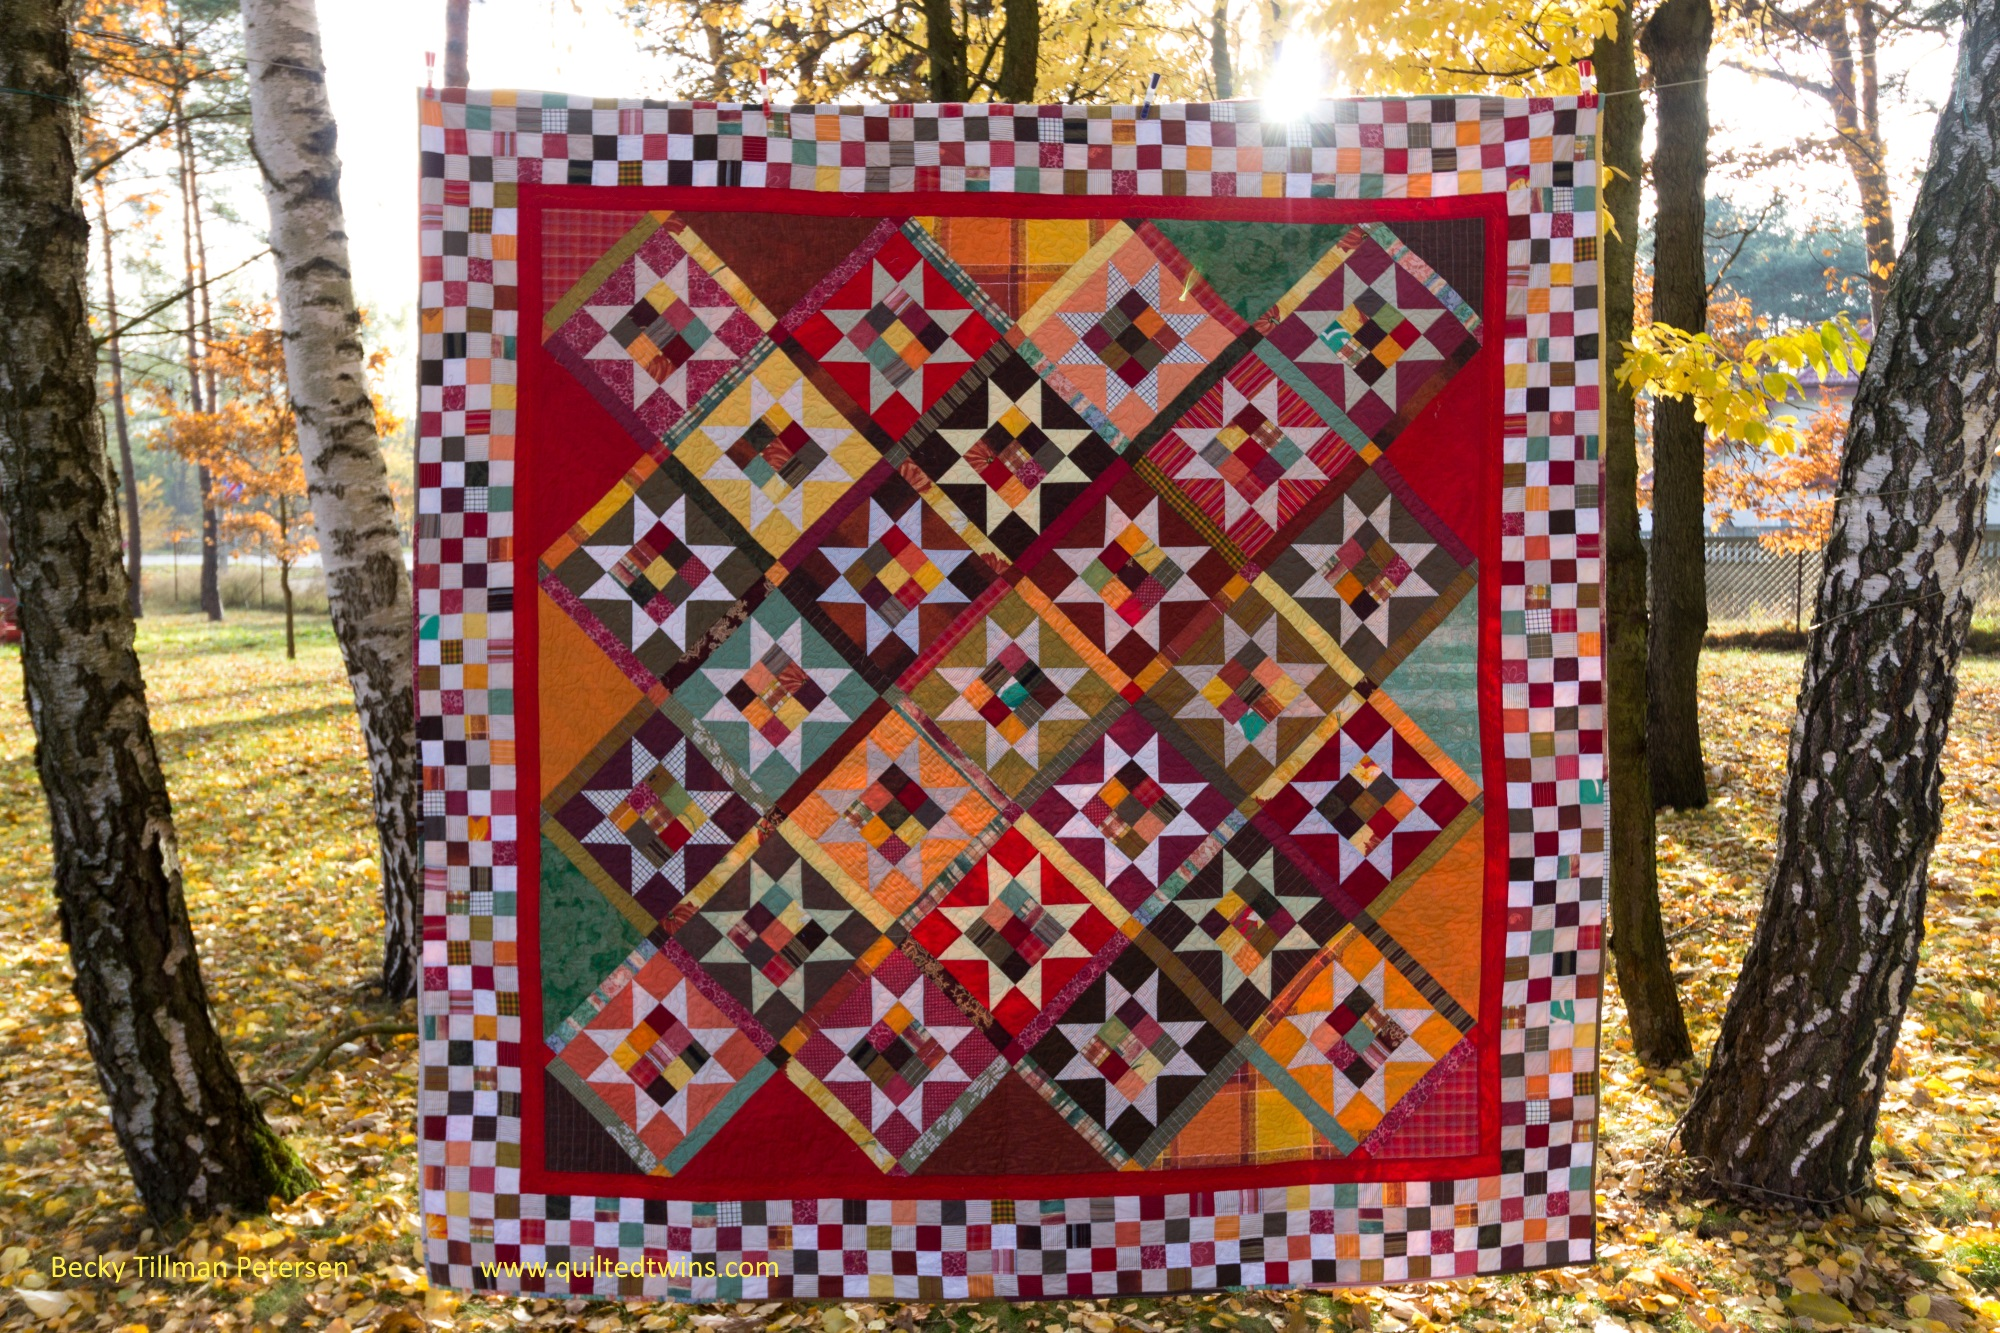 Design - mine  Inspired by - a challenge by Pat Sloan to make a top with the star block. I put it in this layout, reversed the colors, used a scrappy sashing, and added a checkerboard border for a look all my own.  Regrets - this 100% upcycled quilt was made using what I had - and I don't have any regrets with my fabric choices for this one.